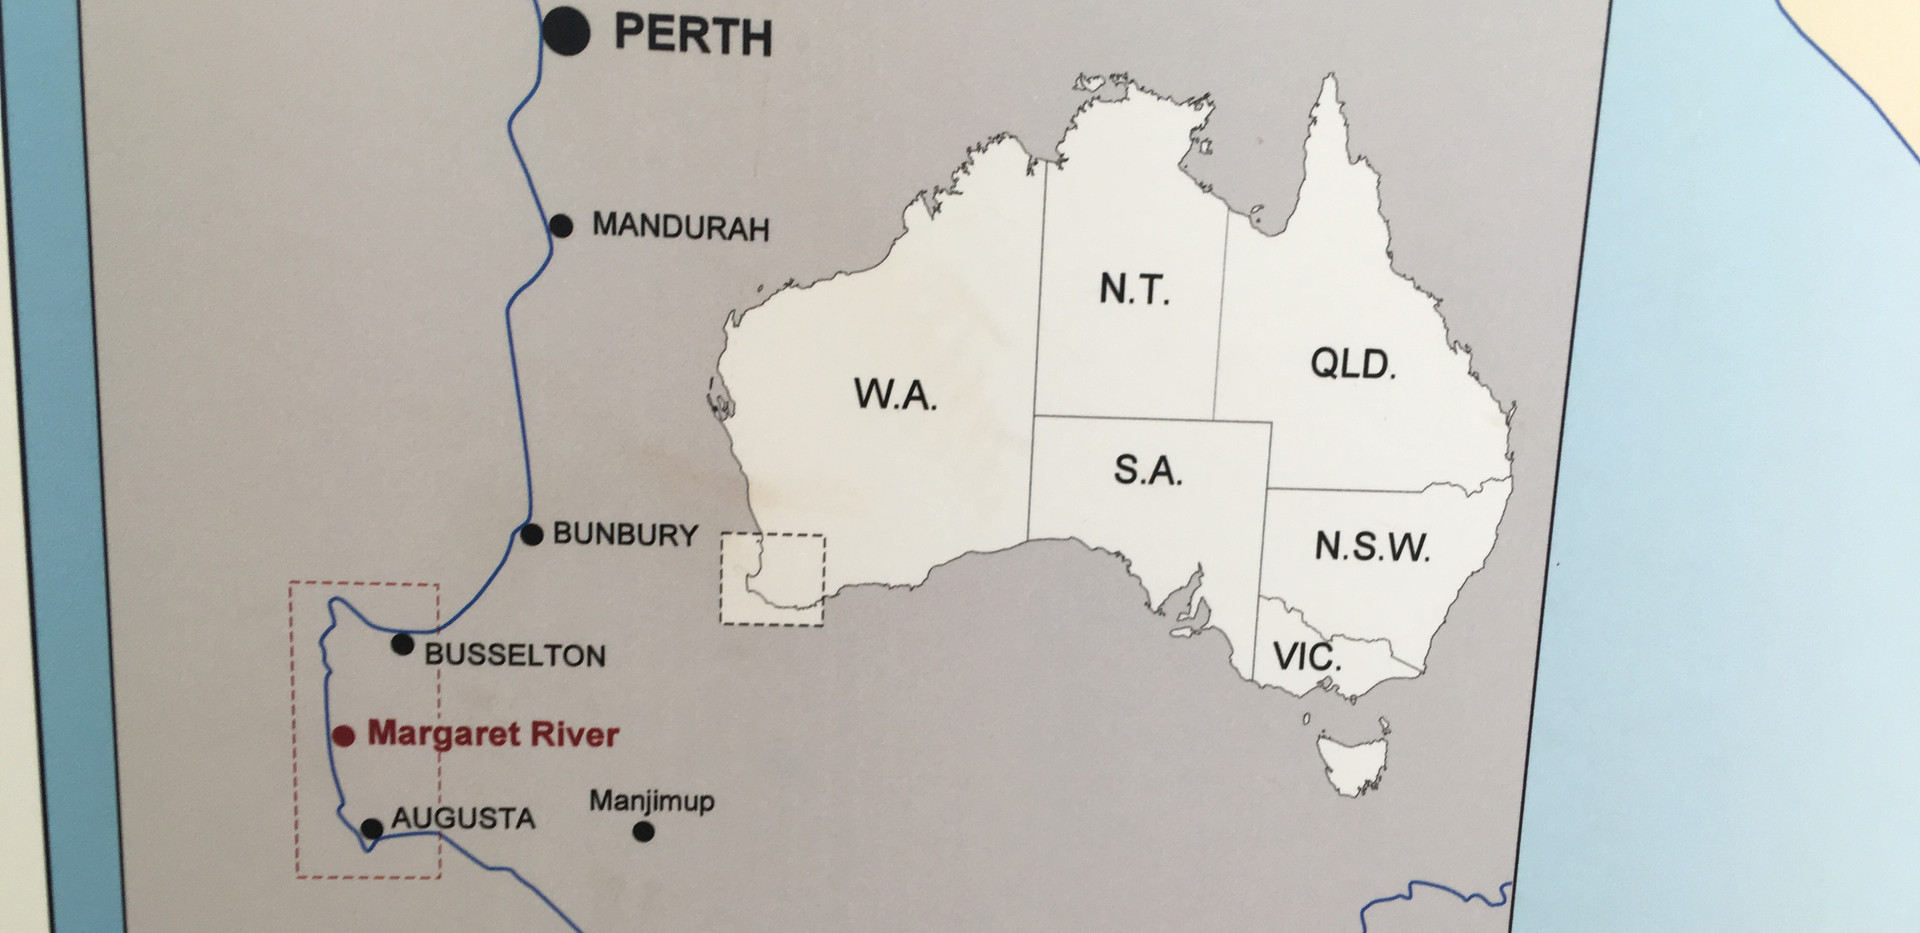 Our road trip from Perth to Albany